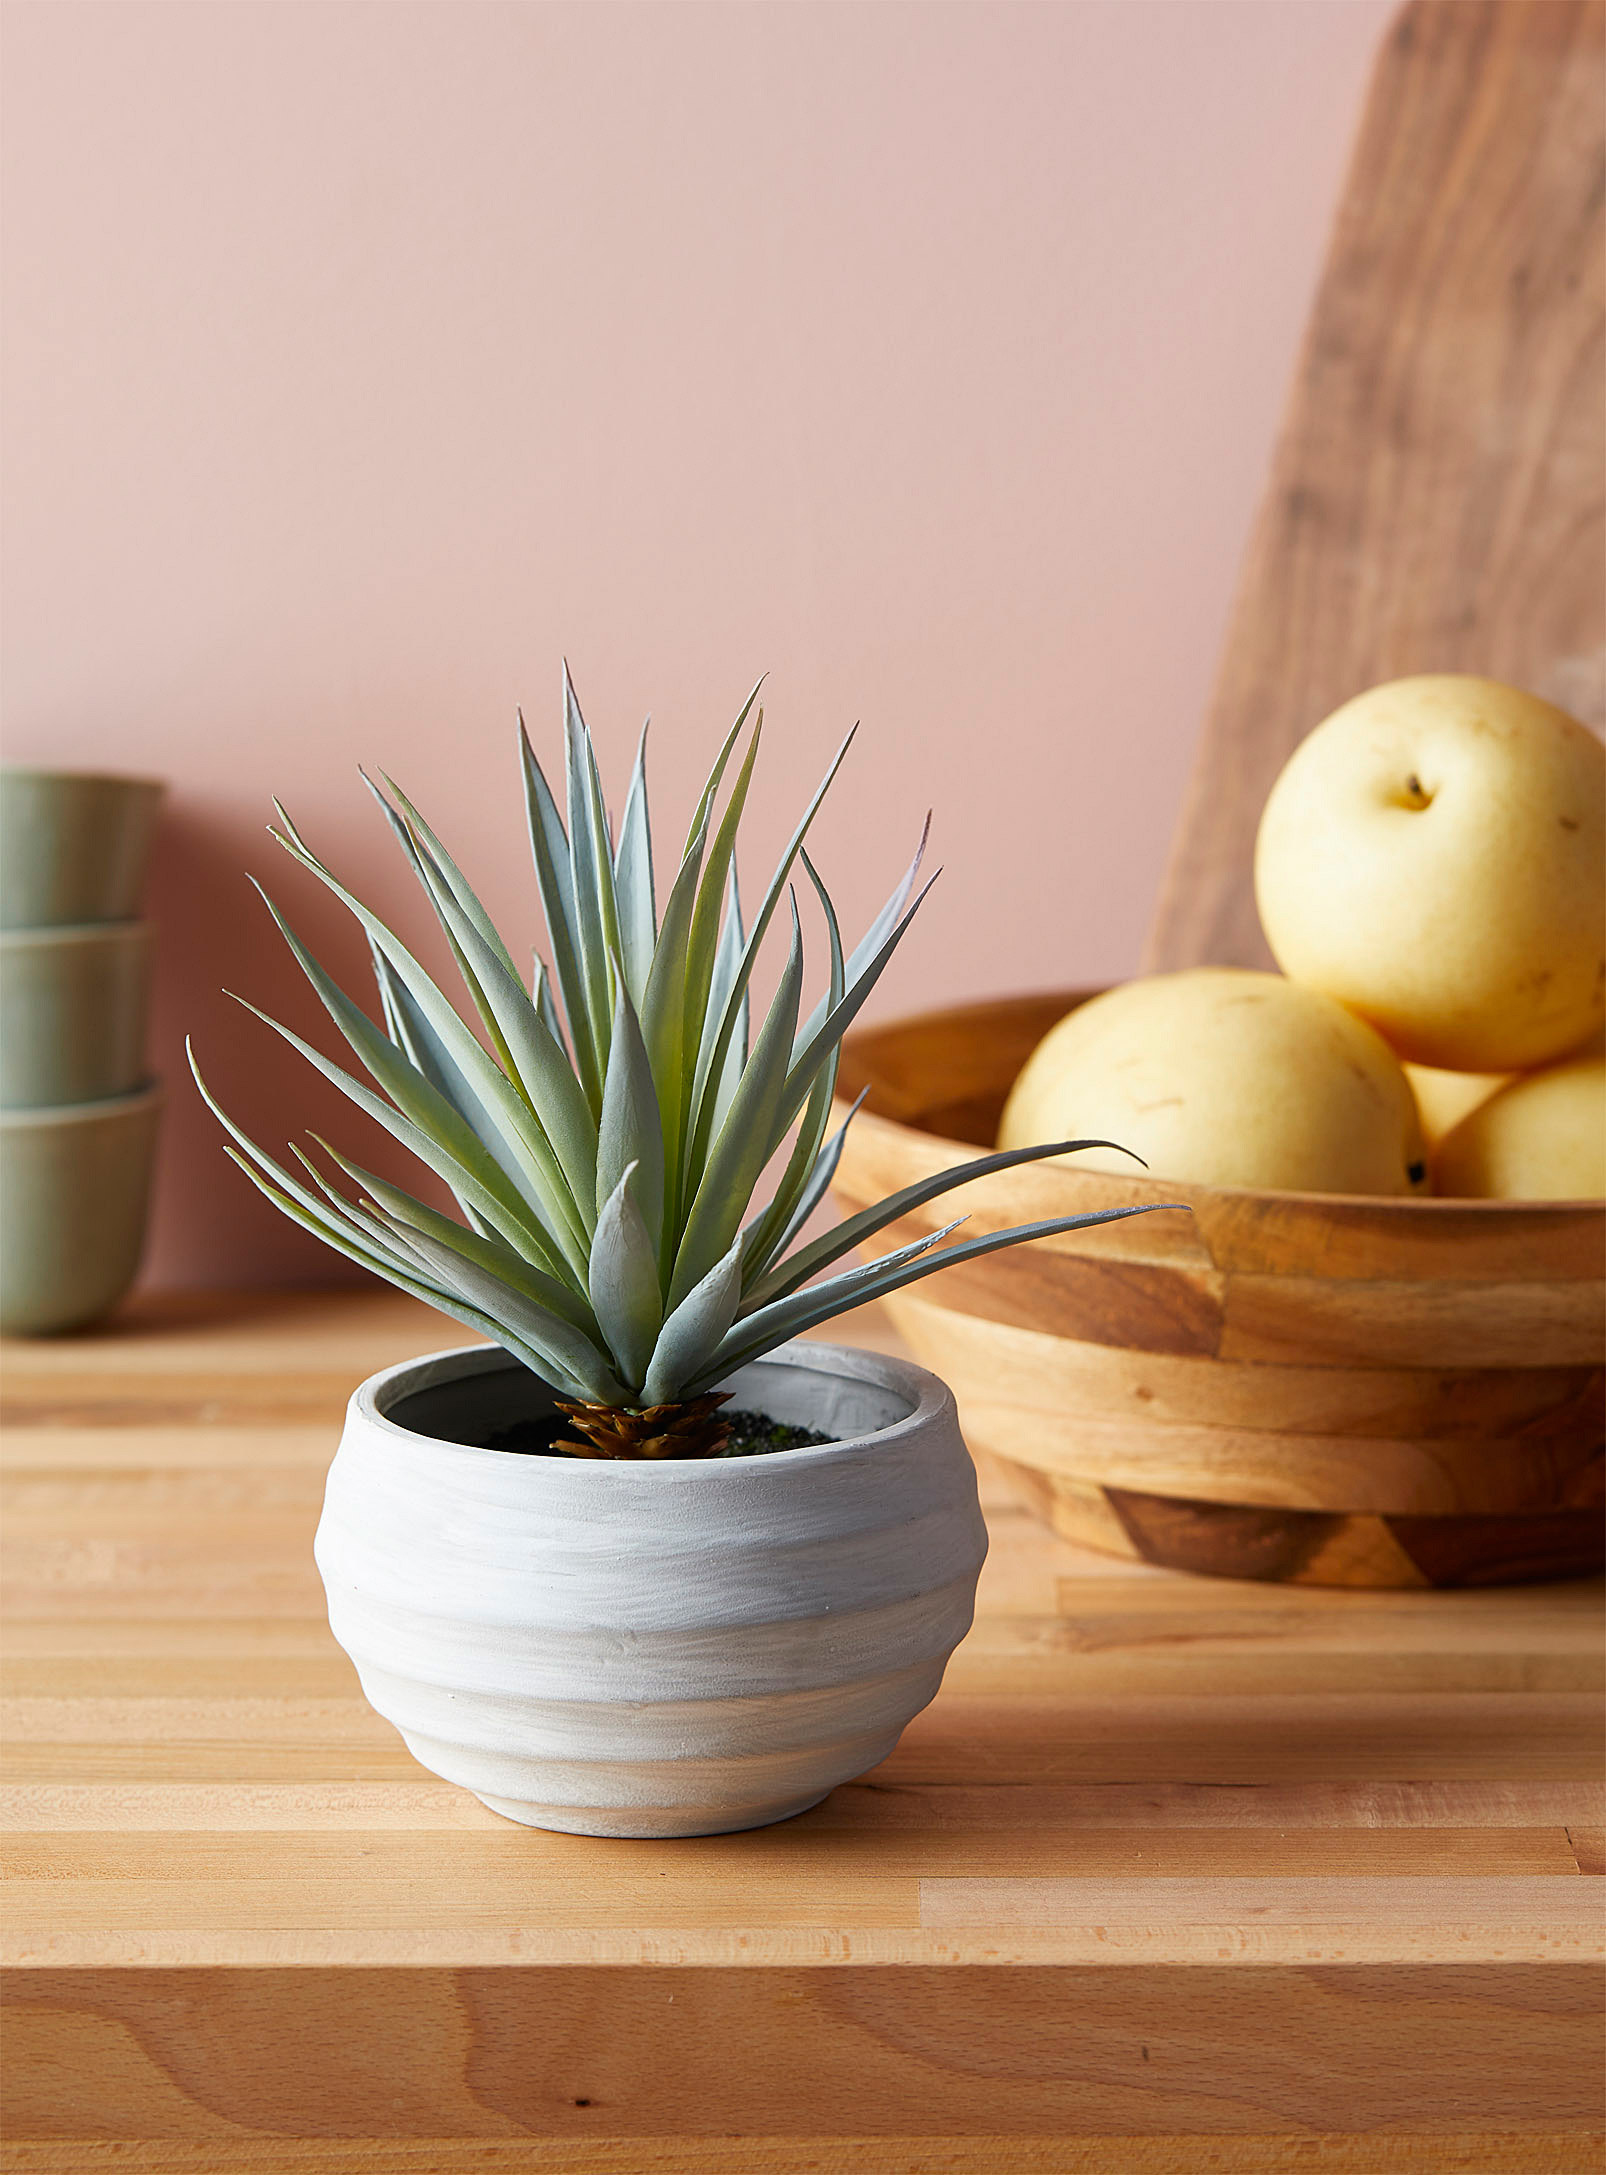 pineapple plant on table